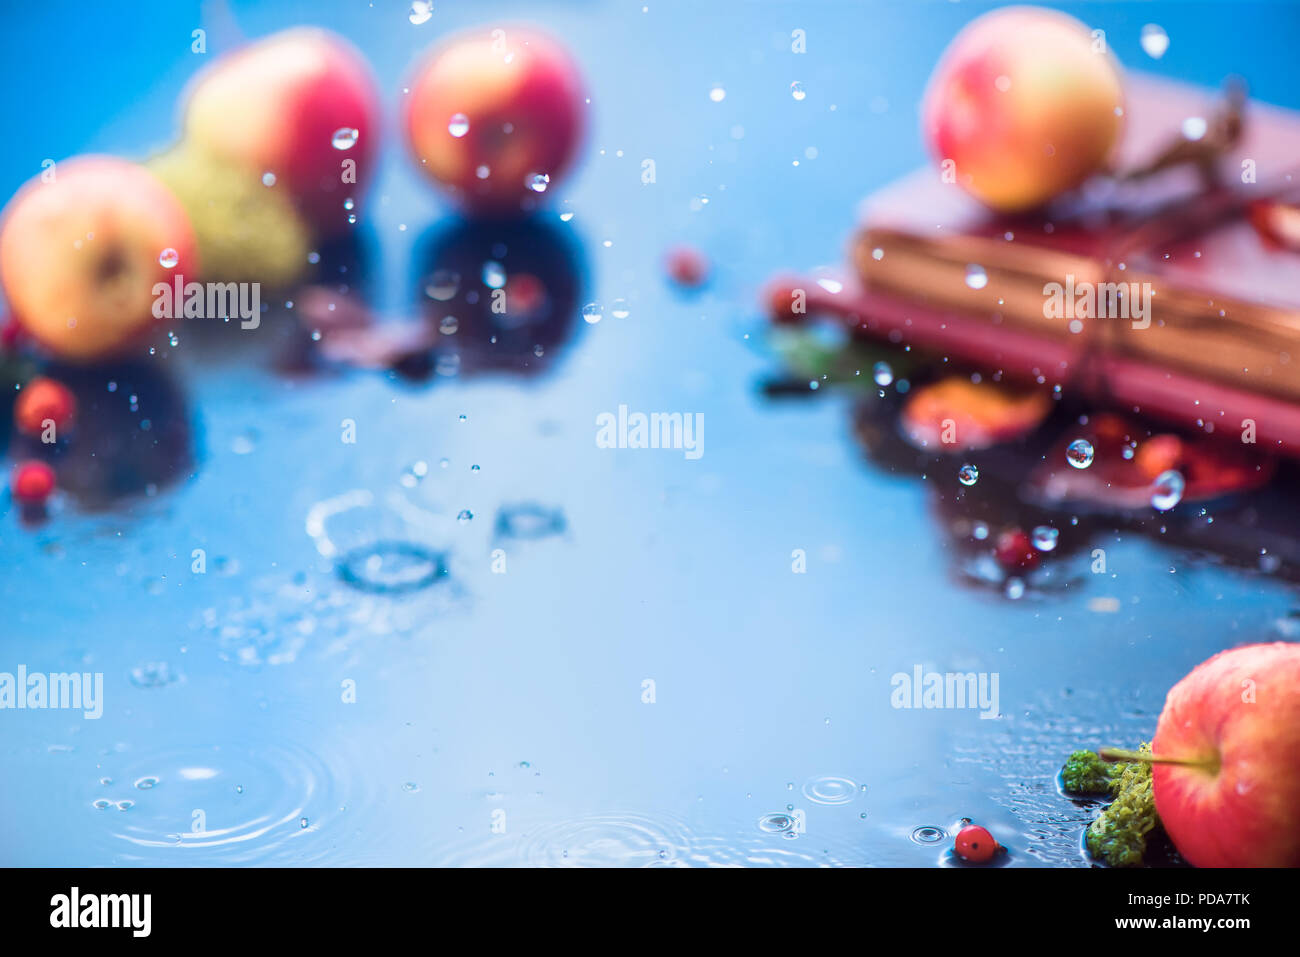 Autumn rain frame with copy space. Unfocused apples with water drops and place for text. Fresh and airy autumn harvest concept - Stock Image